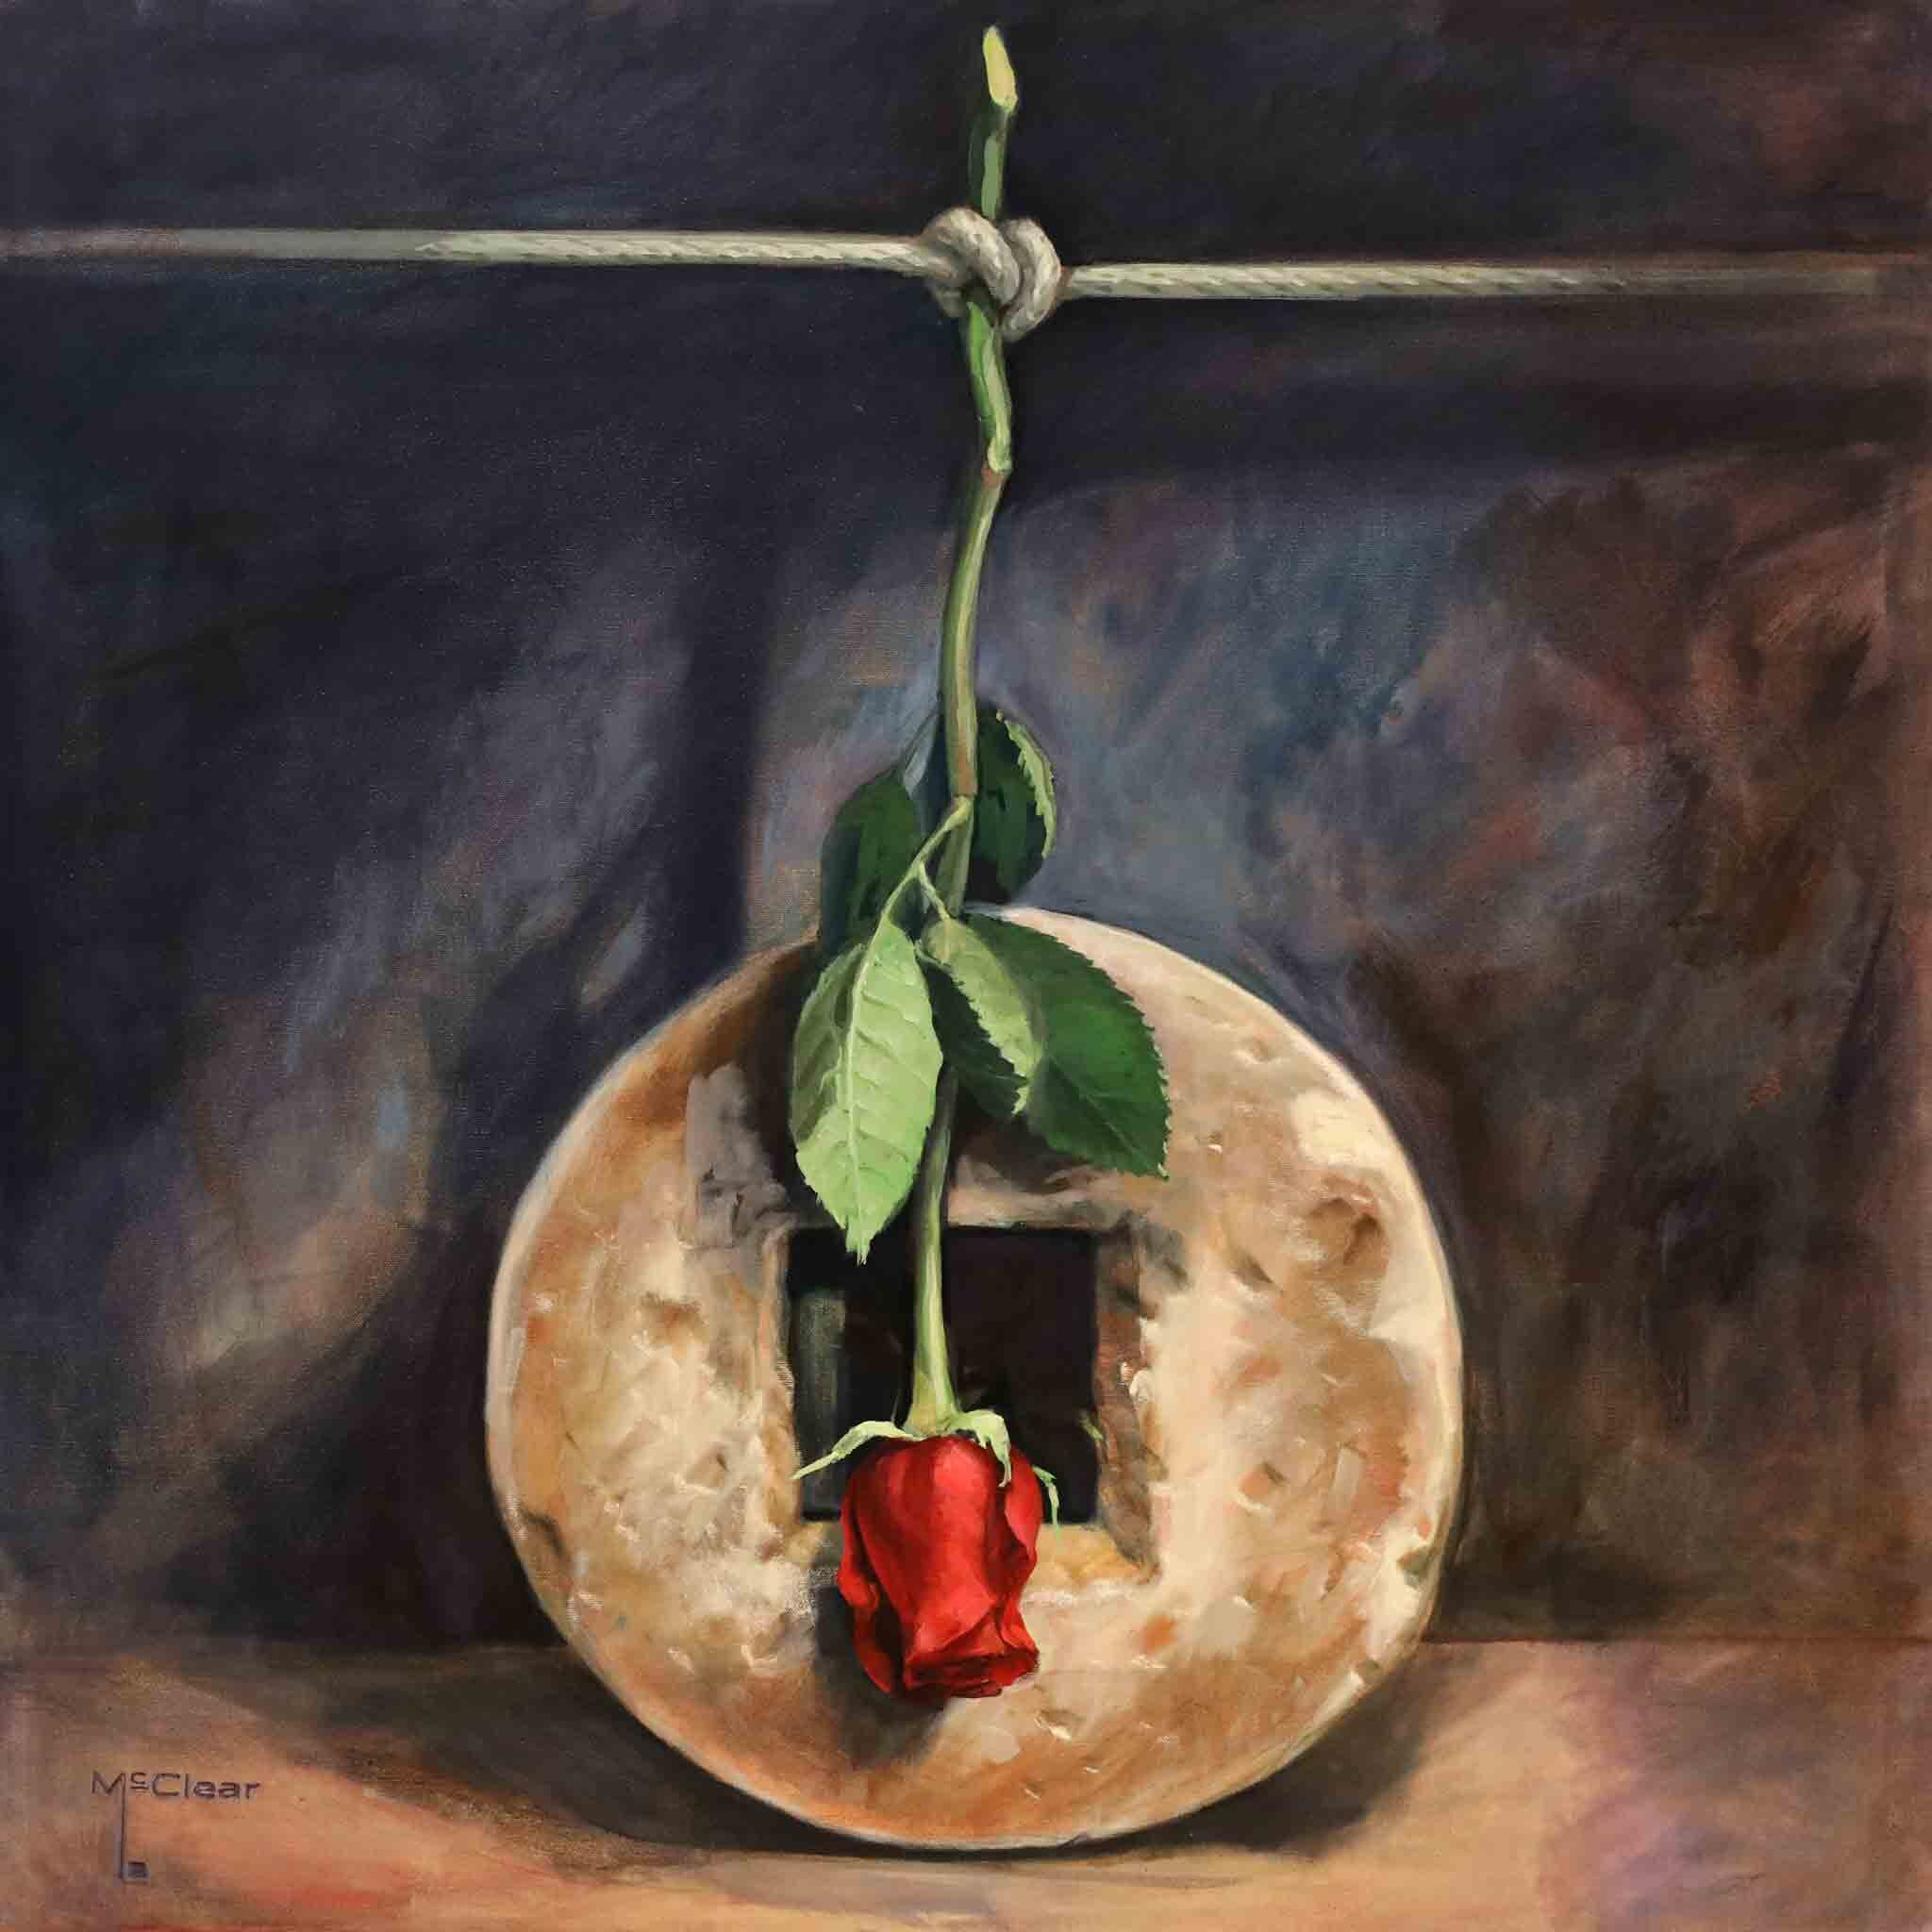 Rose to Grindstone by Brian McClear